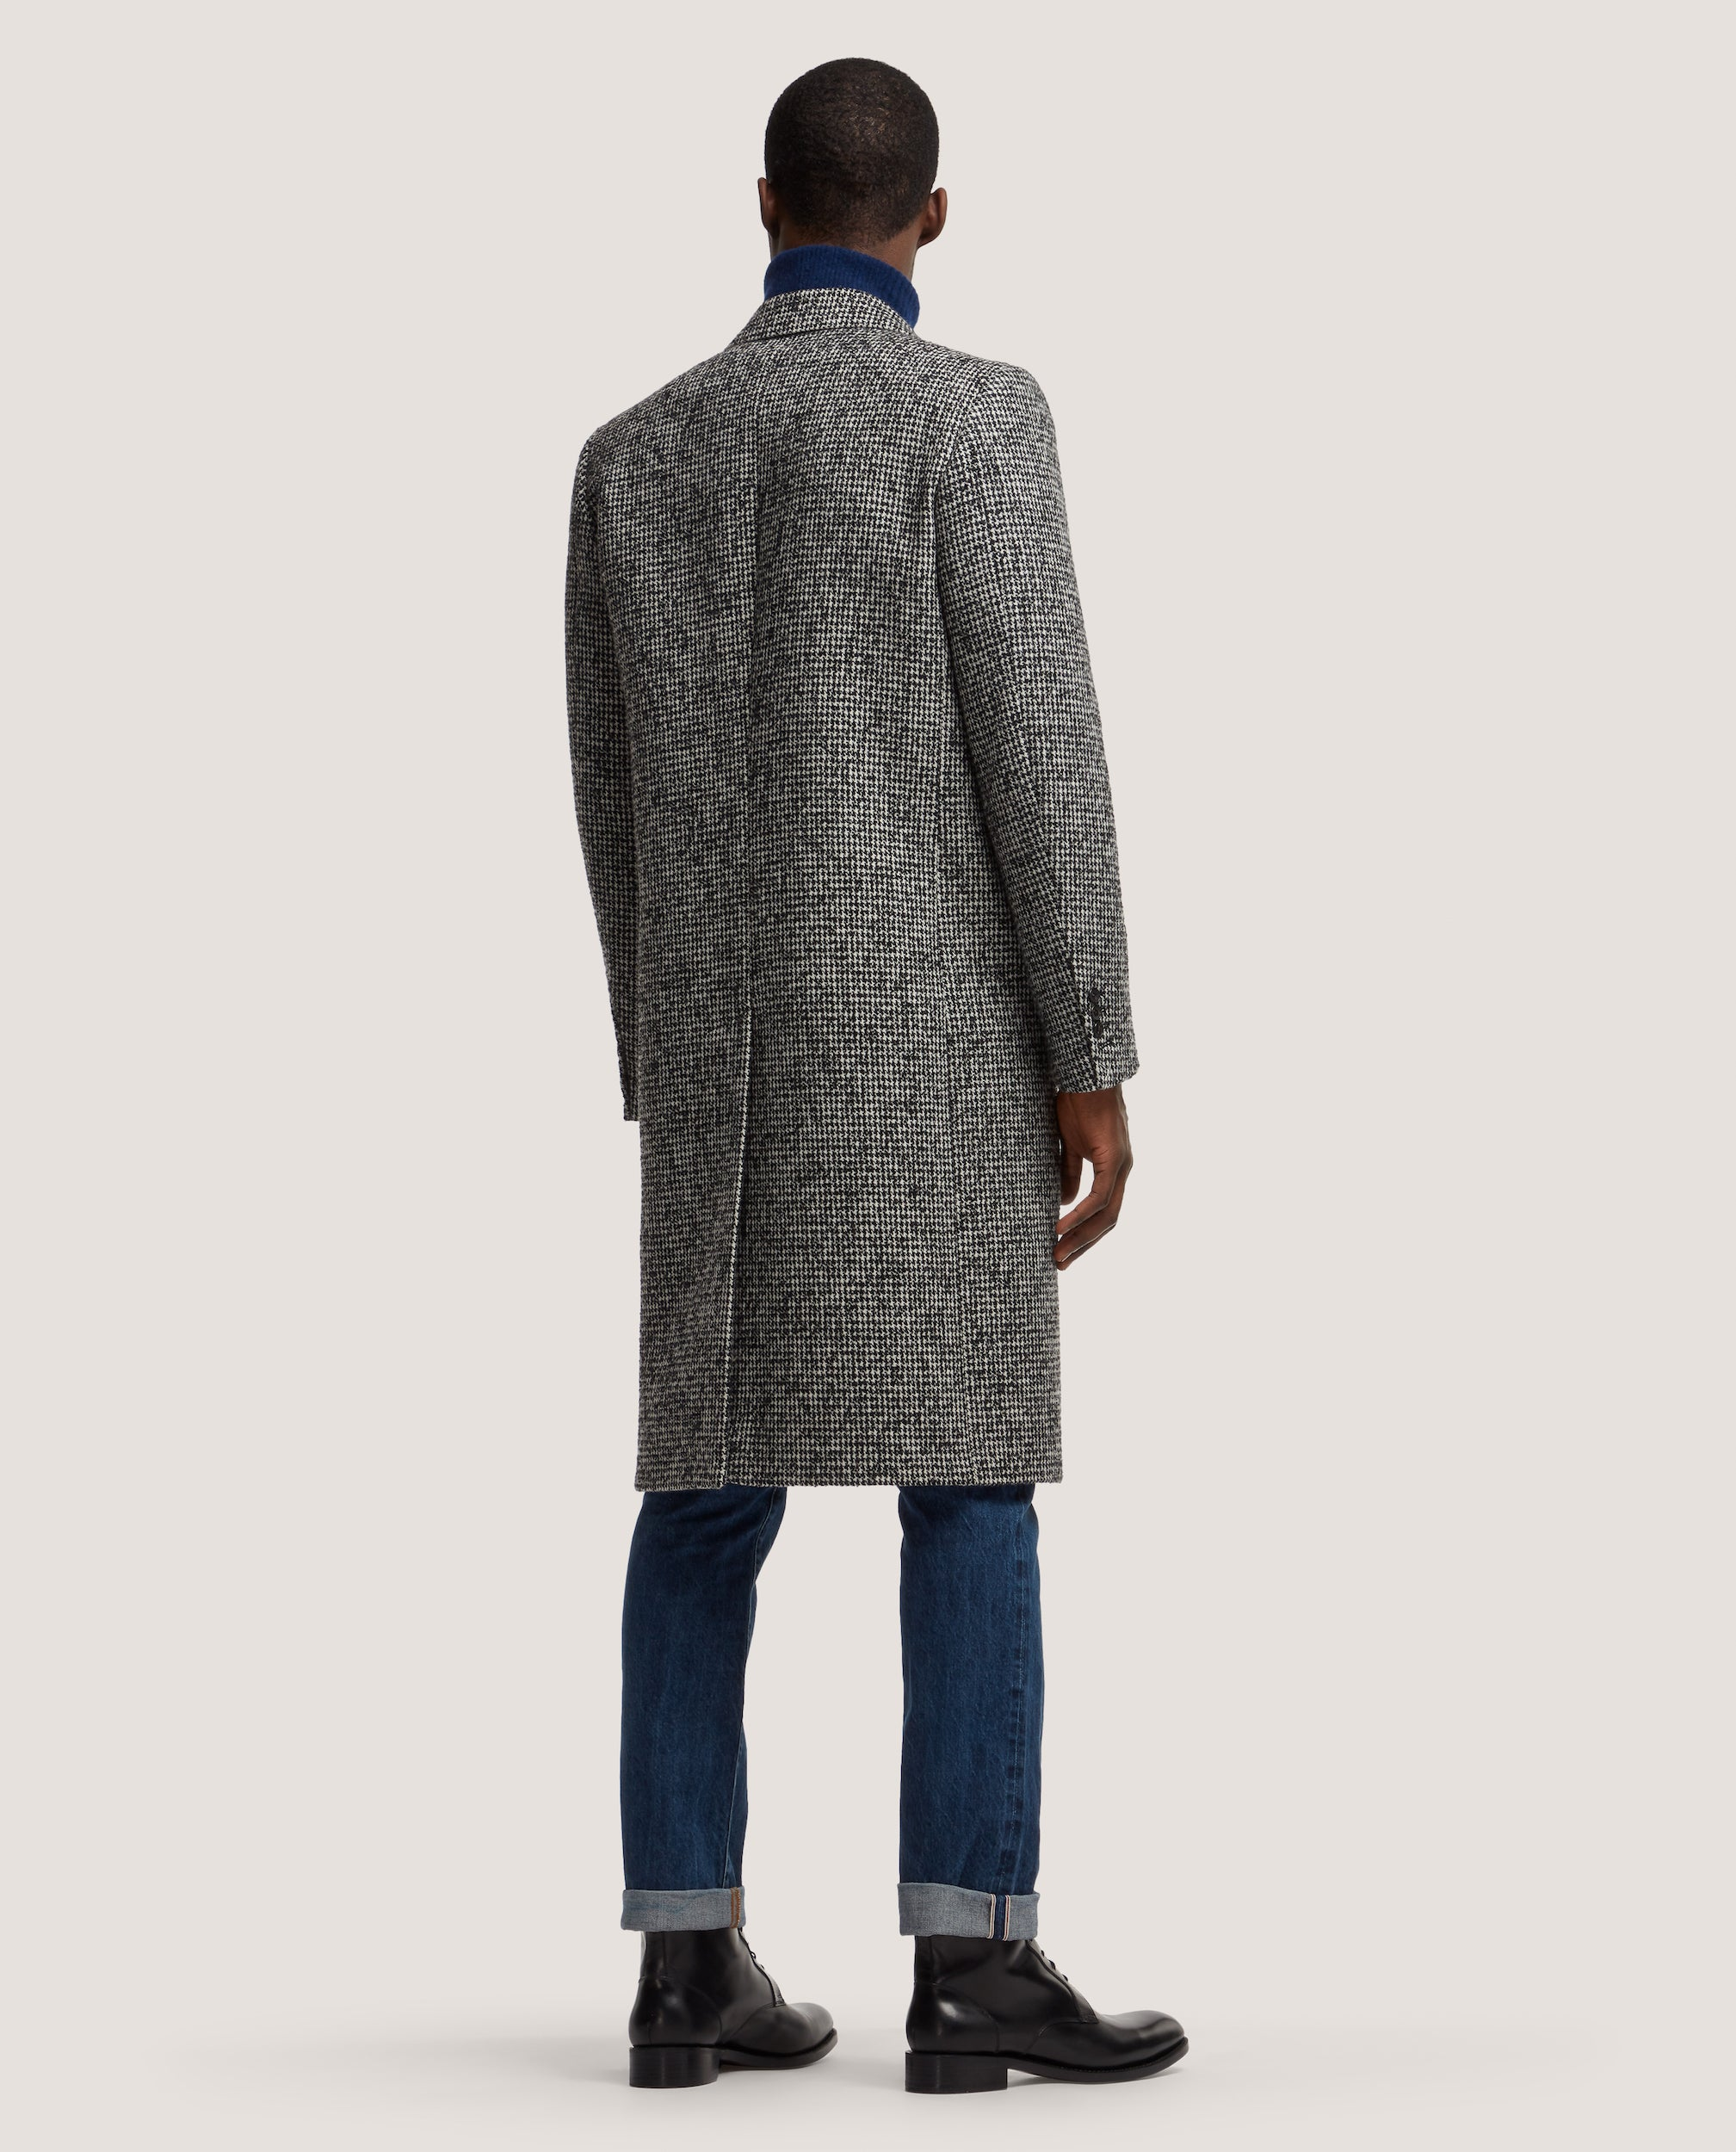 ADRIAN Single breasted wool overcoat | Black & White Pied-de-poule